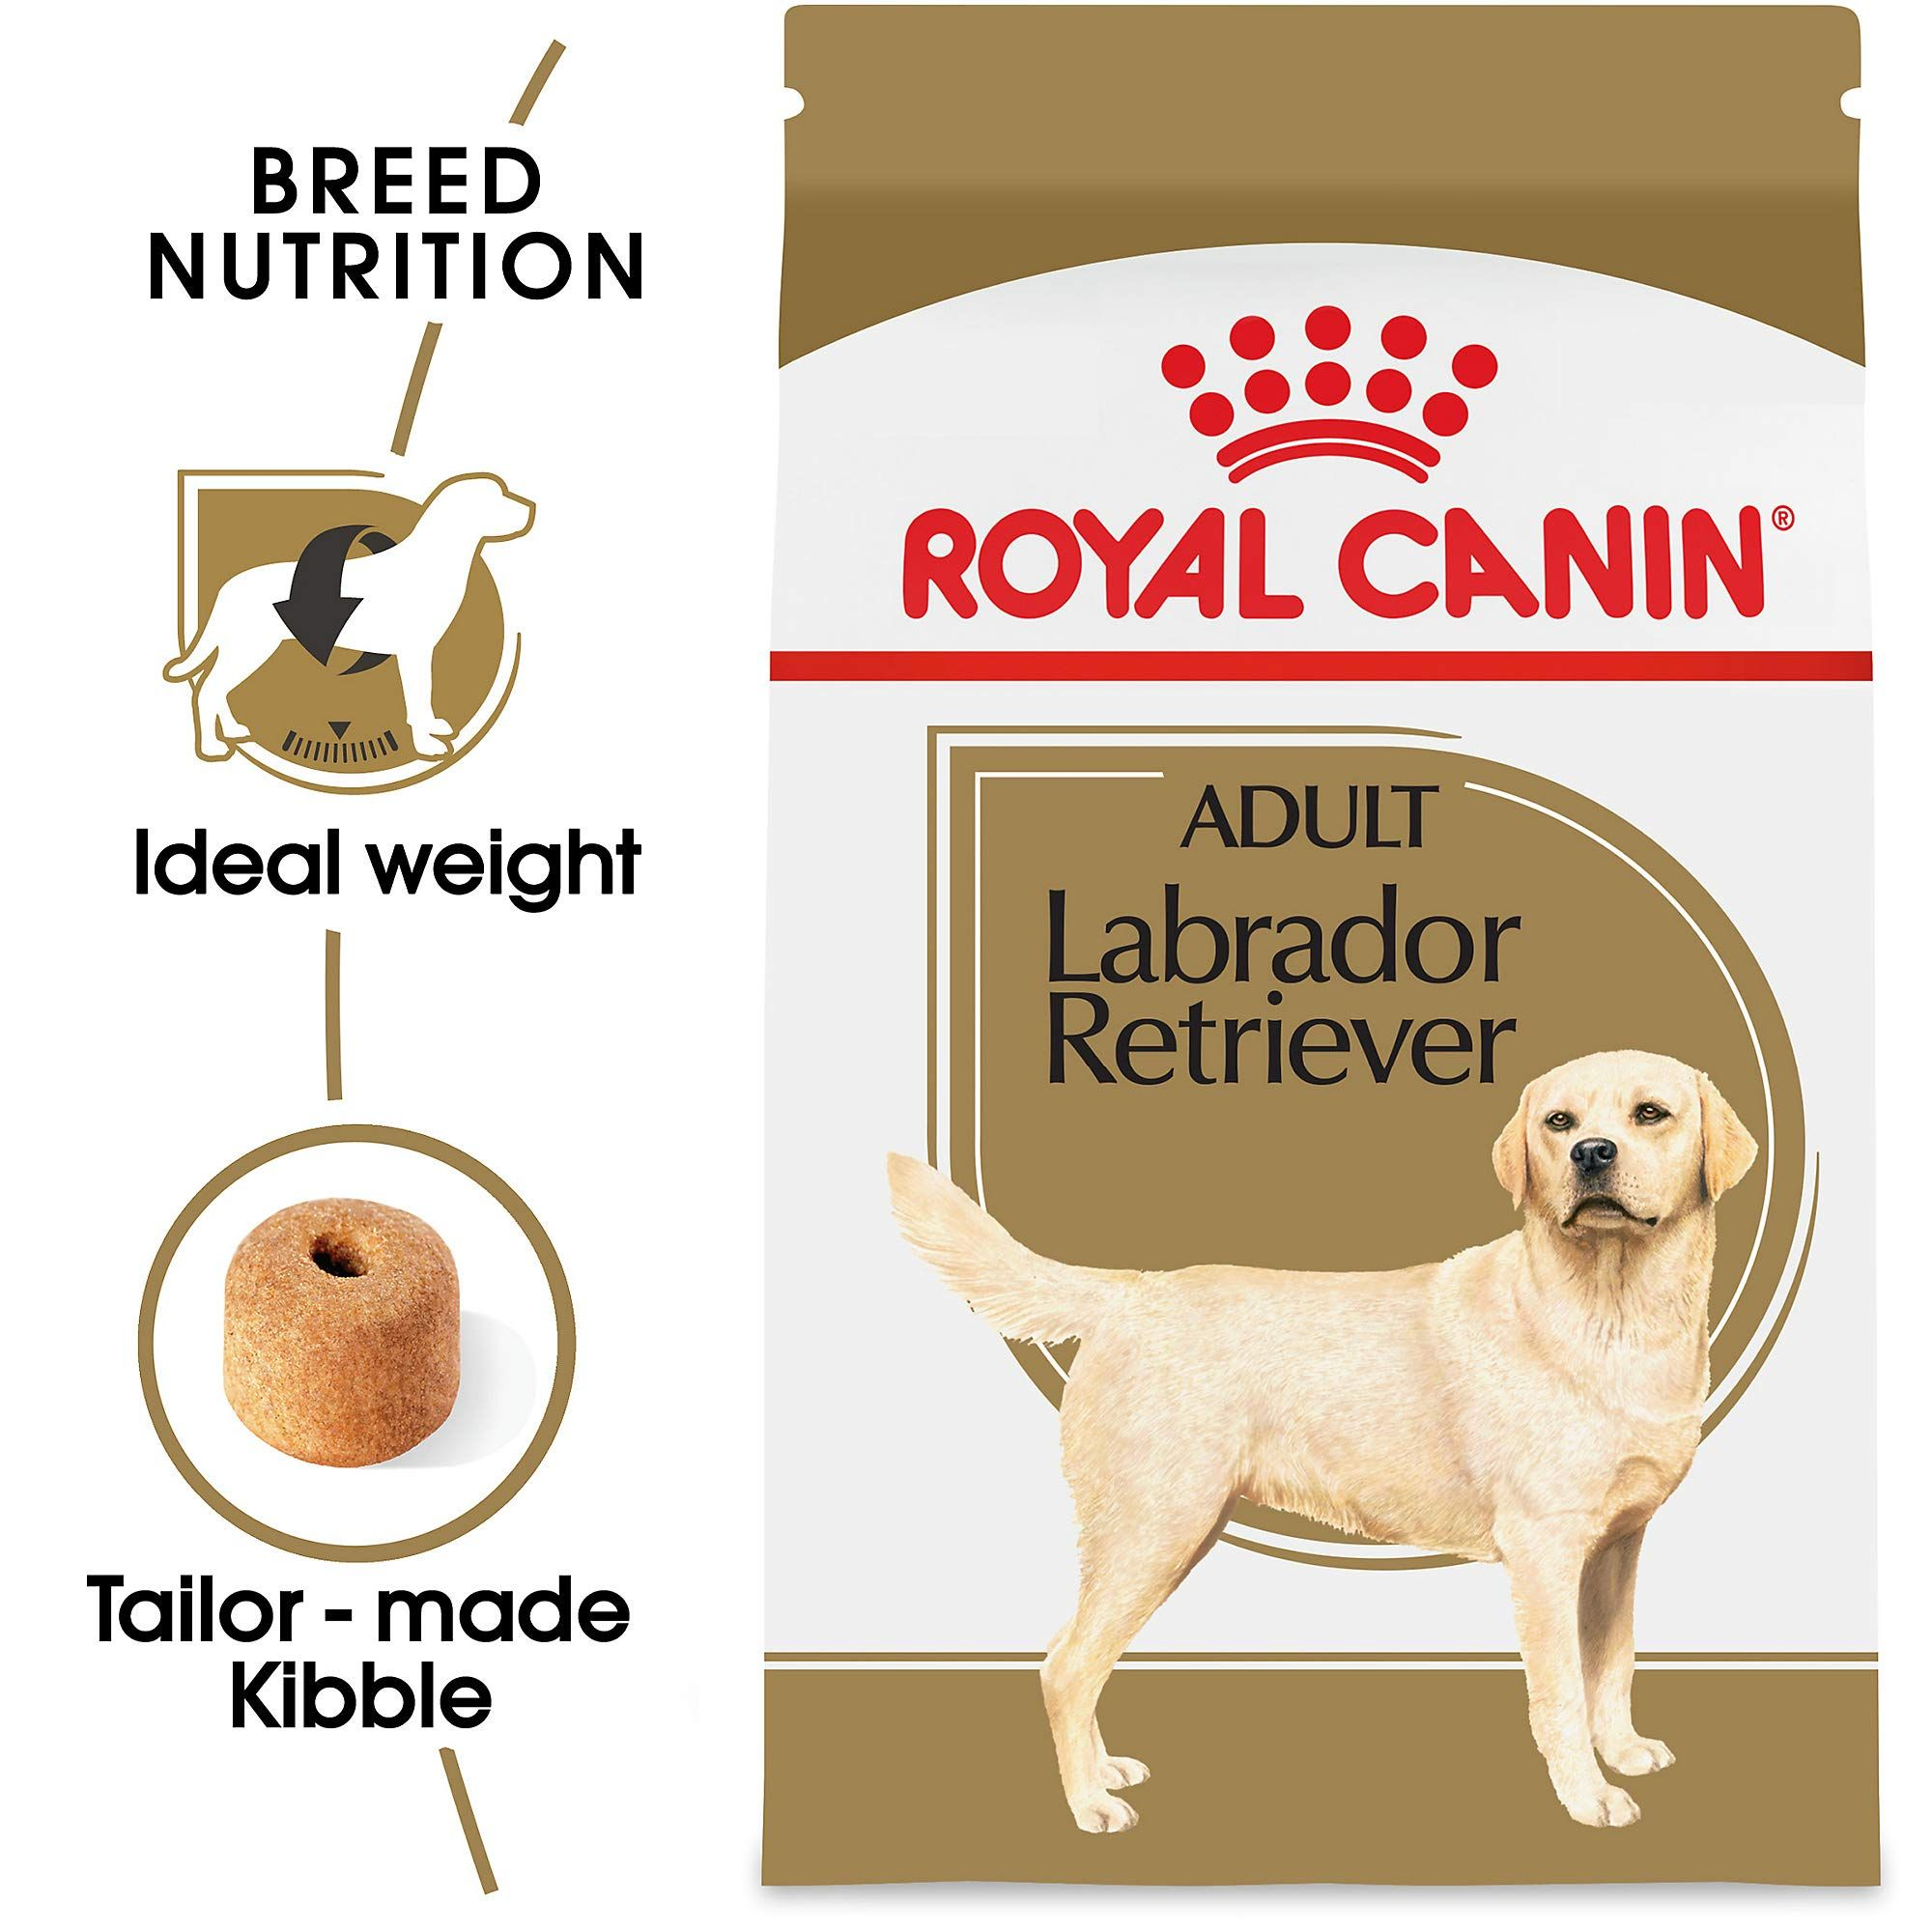 Royal Canin Breed Health Nutrition Labrador Retriever Adult Dry Dog Food You Can Get More Details By Clicking On The Image Dogfood In 2020